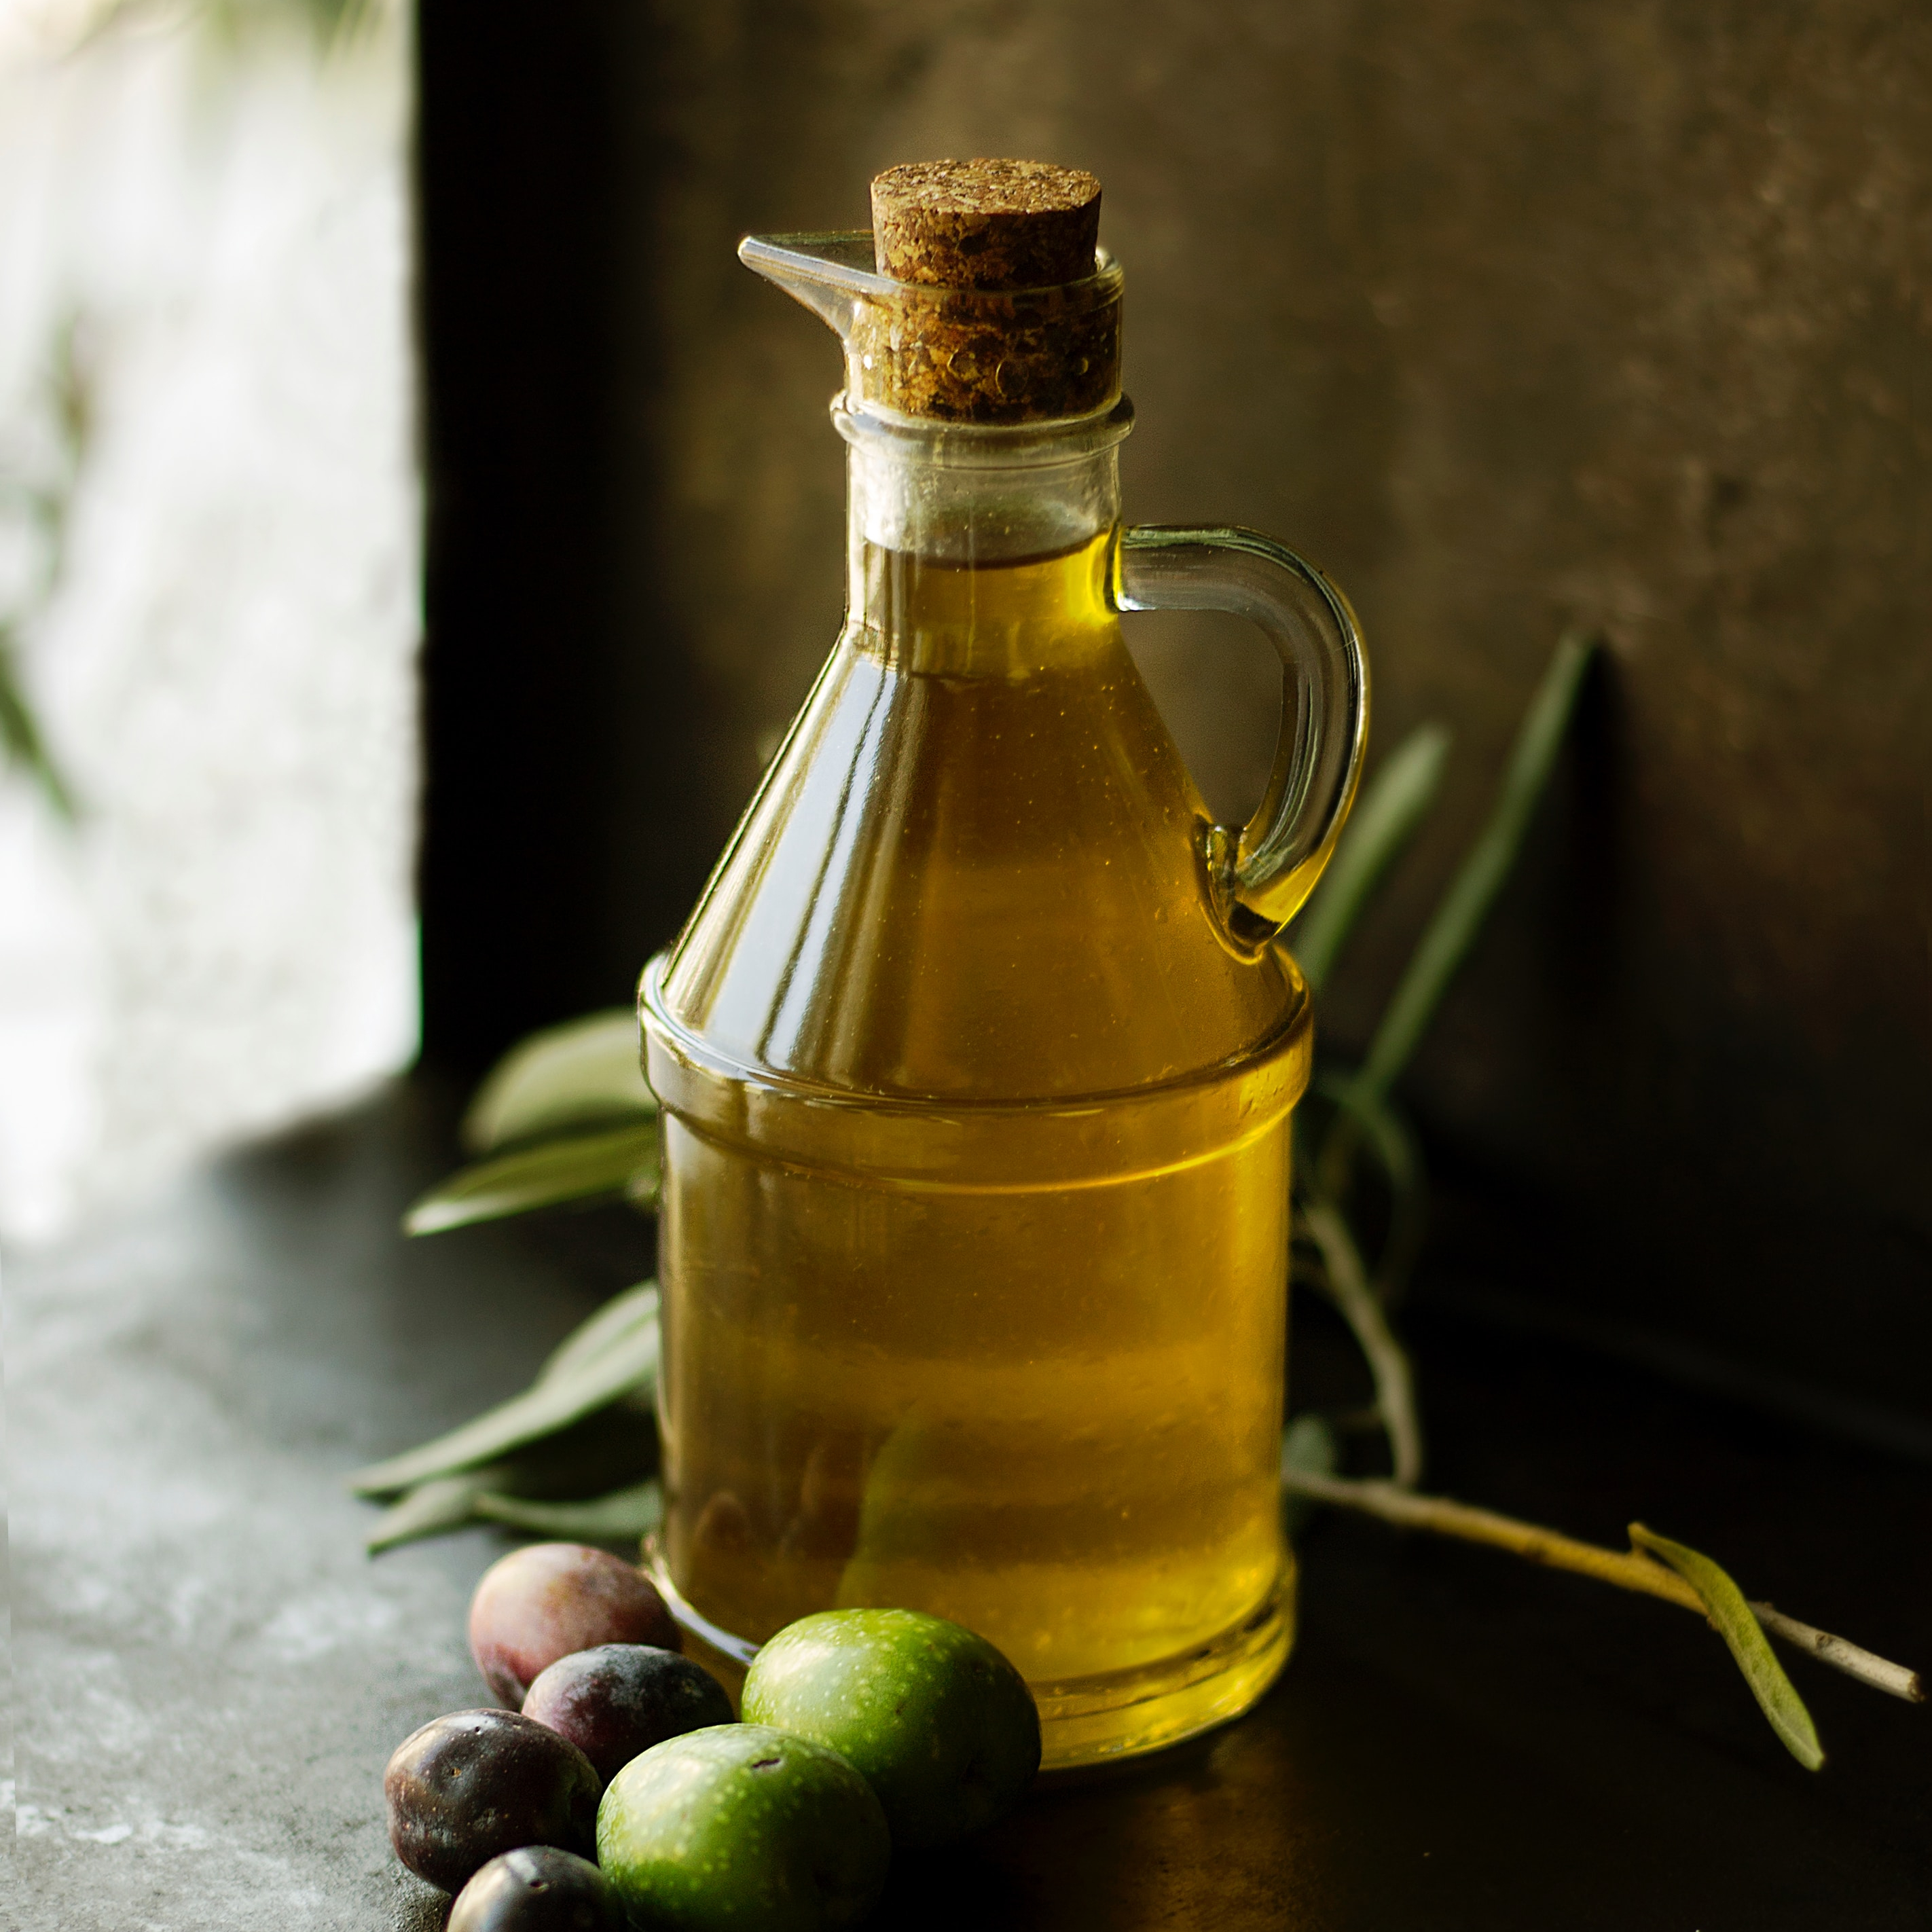 bottle of olive oil with olives in a dark room